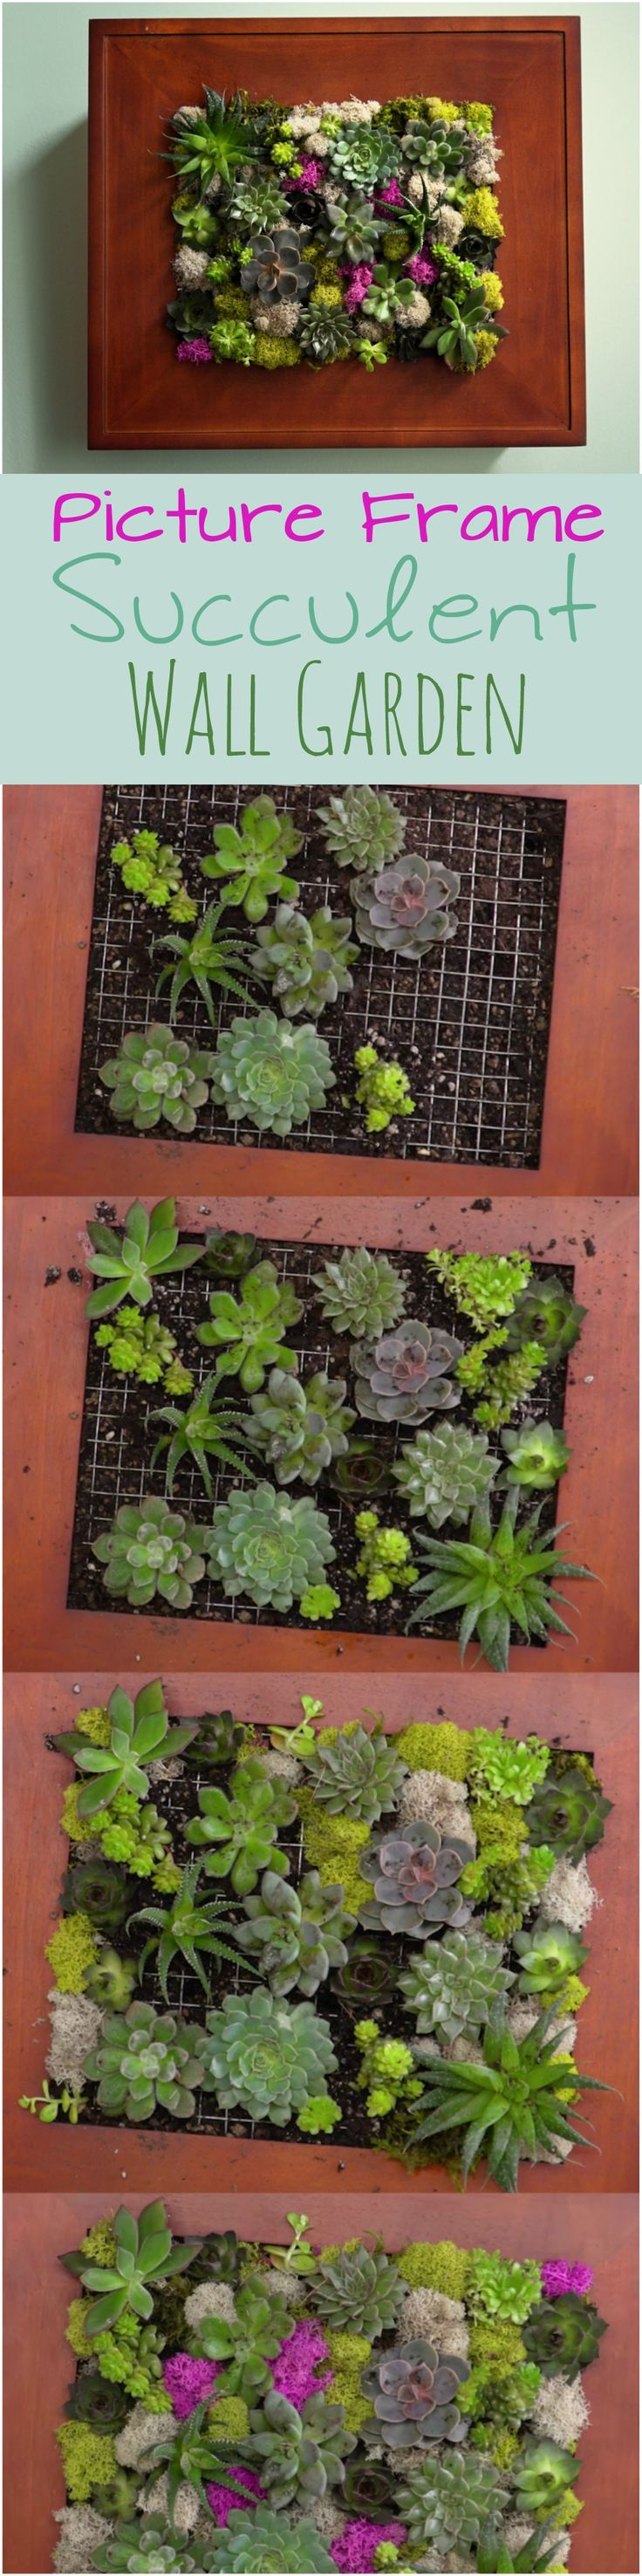 Best 25+ Vertical garden wall ideas on Pinterest | Vertical gardens,  Succulent wall diy and Vertical succulent gardens